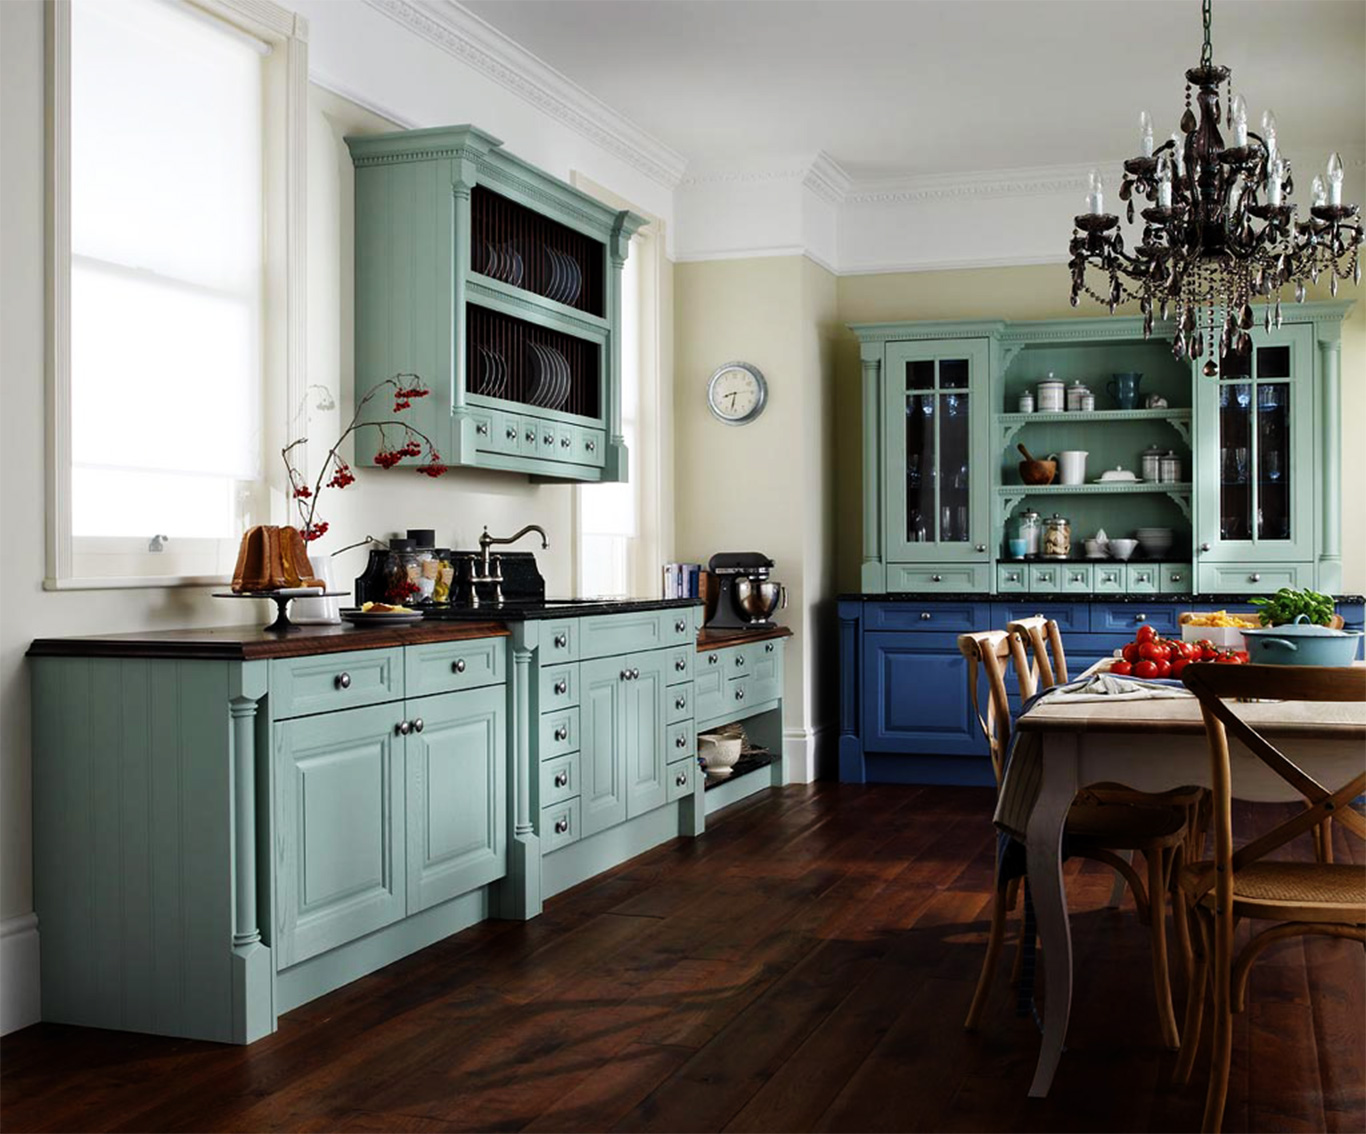 kitchen cabinet colors ideas photo - 1